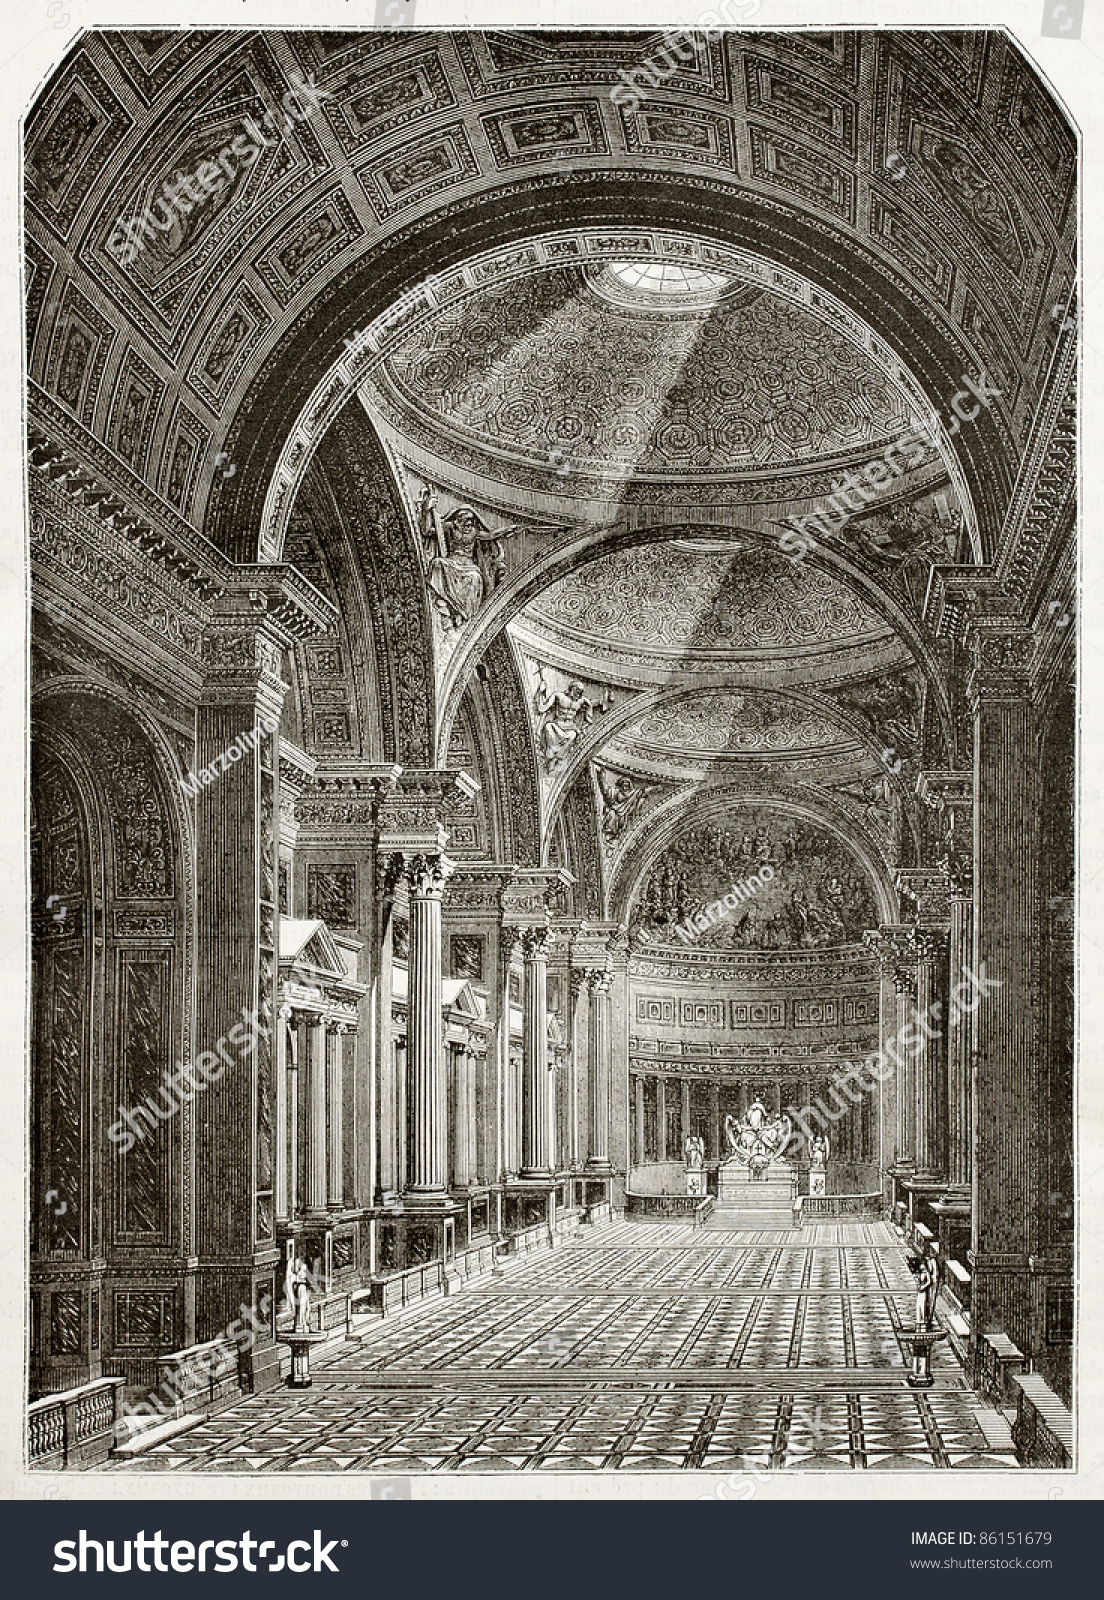 eglise de la madeleine interior old illustration paris created by desmarest and pisan. Black Bedroom Furniture Sets. Home Design Ideas